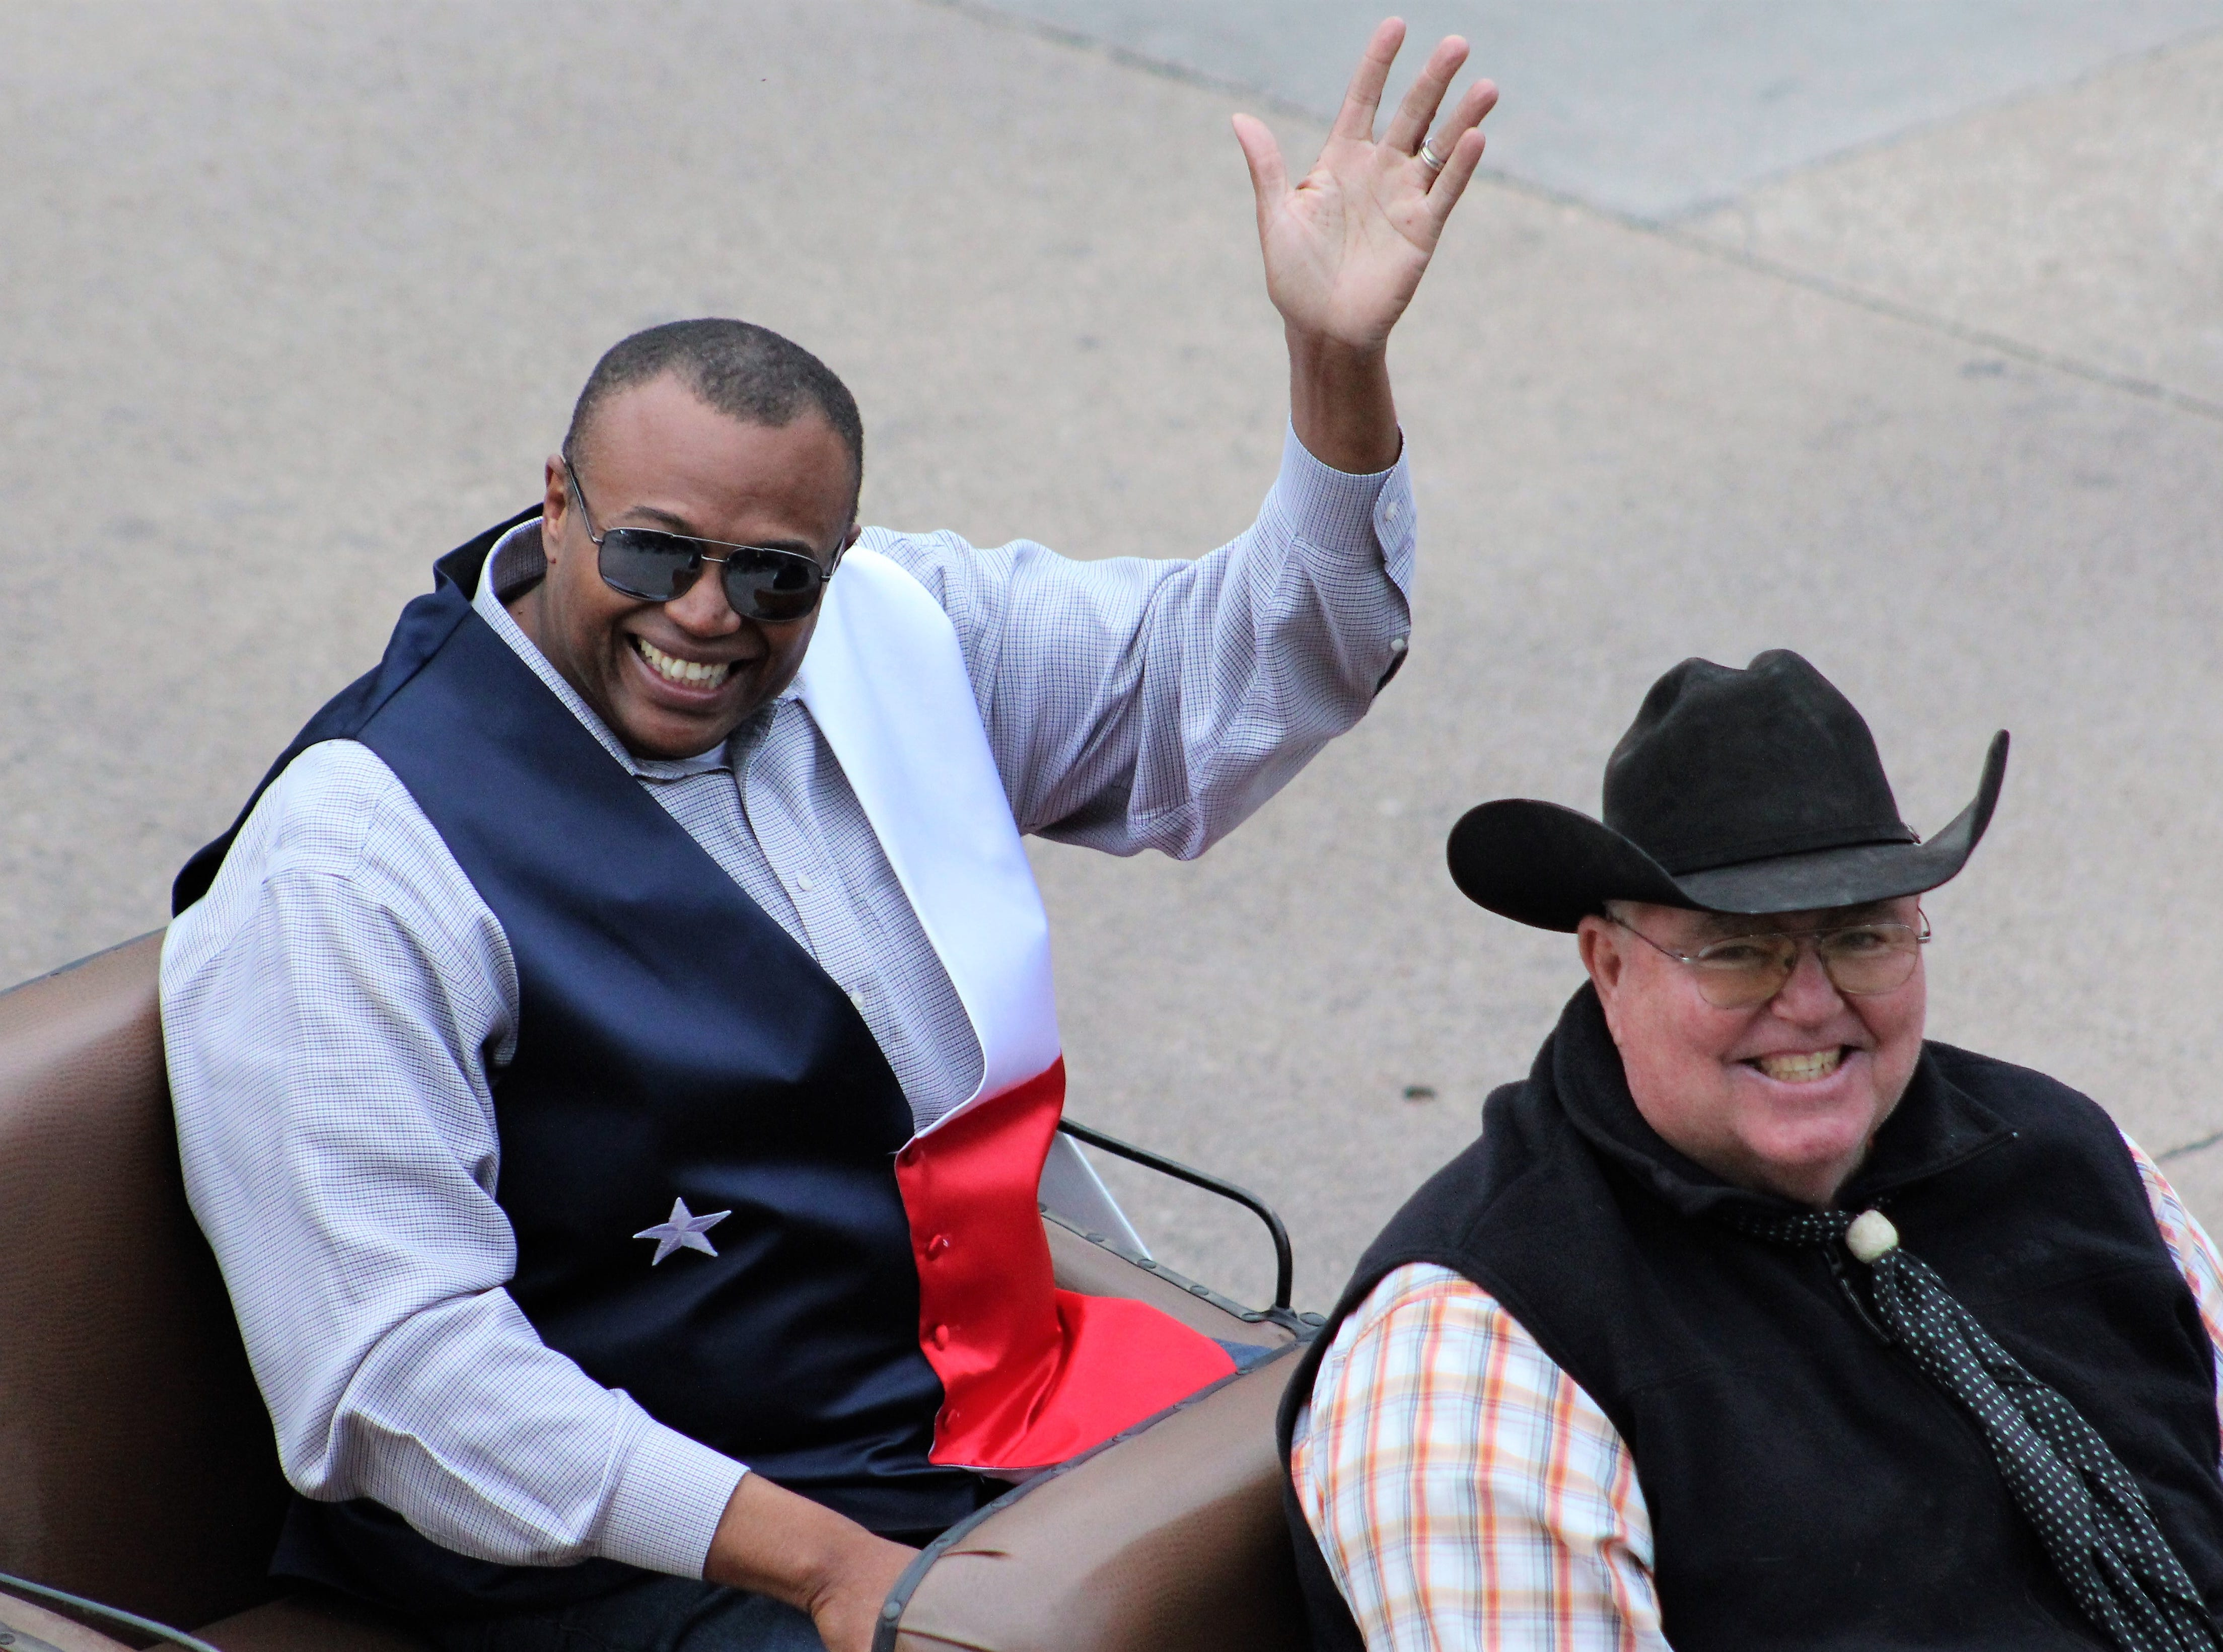 """Abilene Mayor Anthony """"Tex"""" Williams waves his howdys to parade-watchers hollering at him during Thursday evening's Western Heritage Classic parade through downtown Abilene. May 9, 2019"""